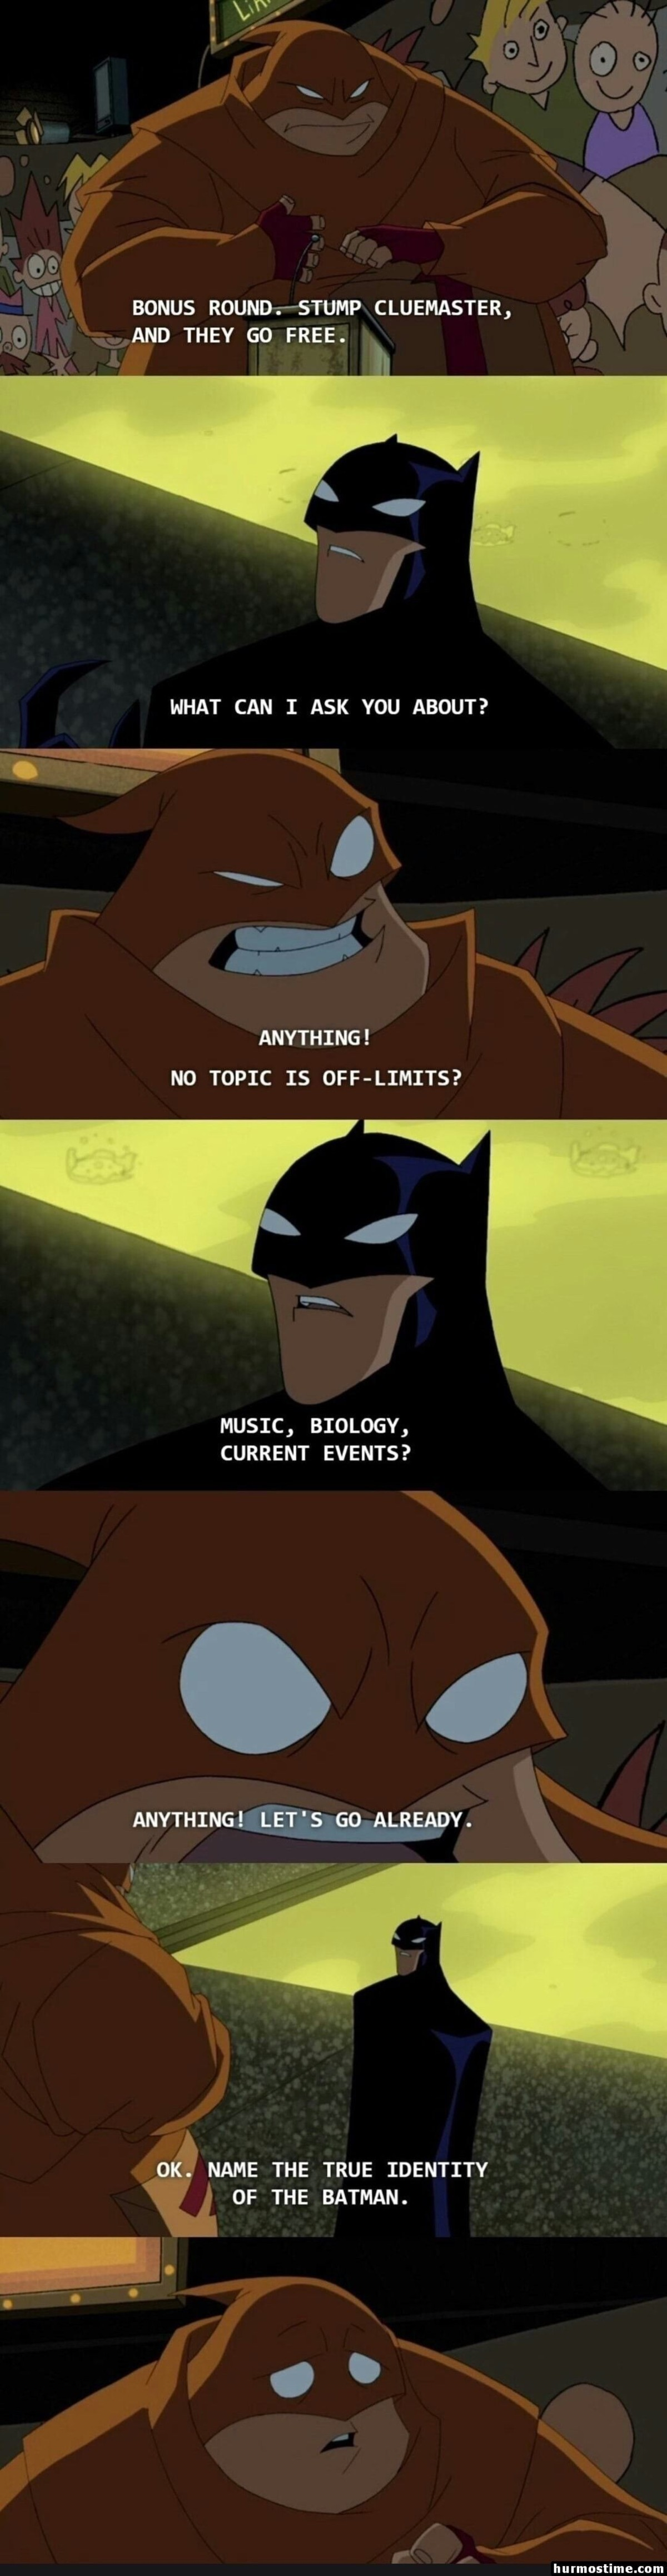 """dysfunctional petite Lyrebird. .. """"The batman's true identity and is the batman"""" Don't even need to know Bruce thinks of himself as """"batman"""" to answer that Because batman IS"""